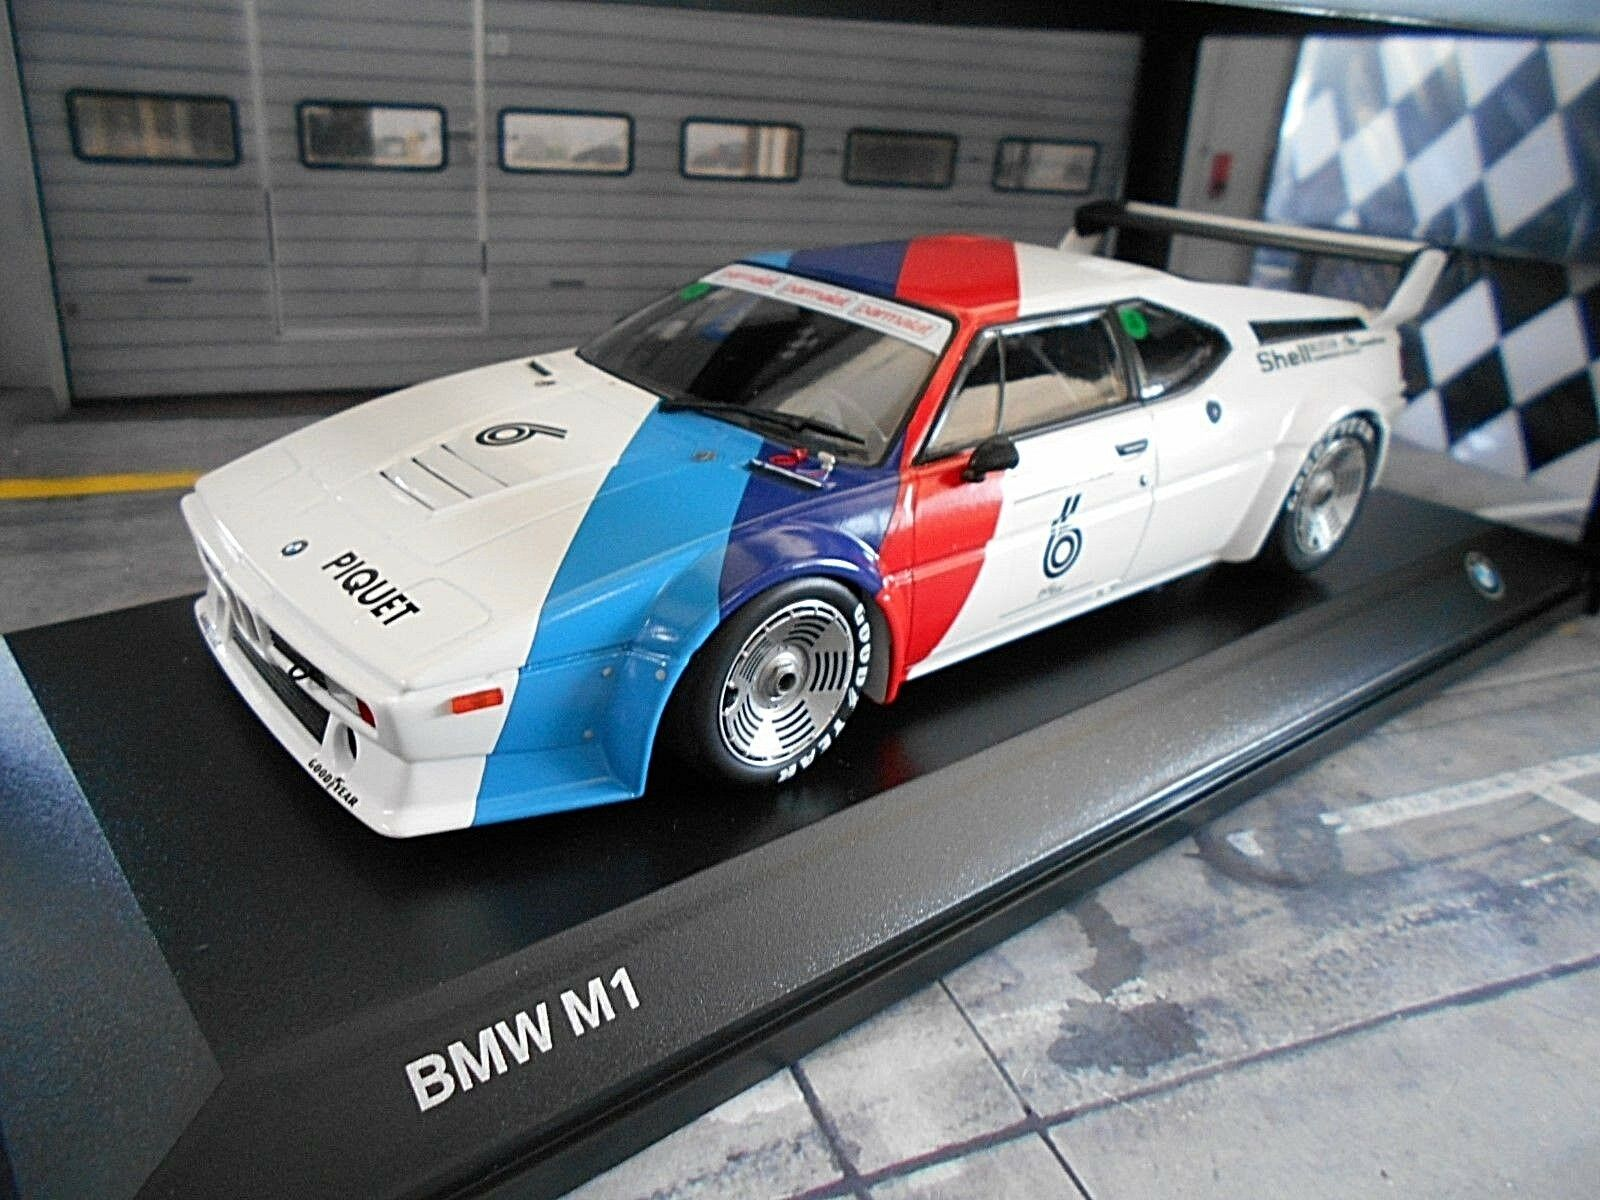 Bmw m1 PROCAR SERIES RACING 1979  6 Piquet M miniature MINICHAMPS Heritage 1 18